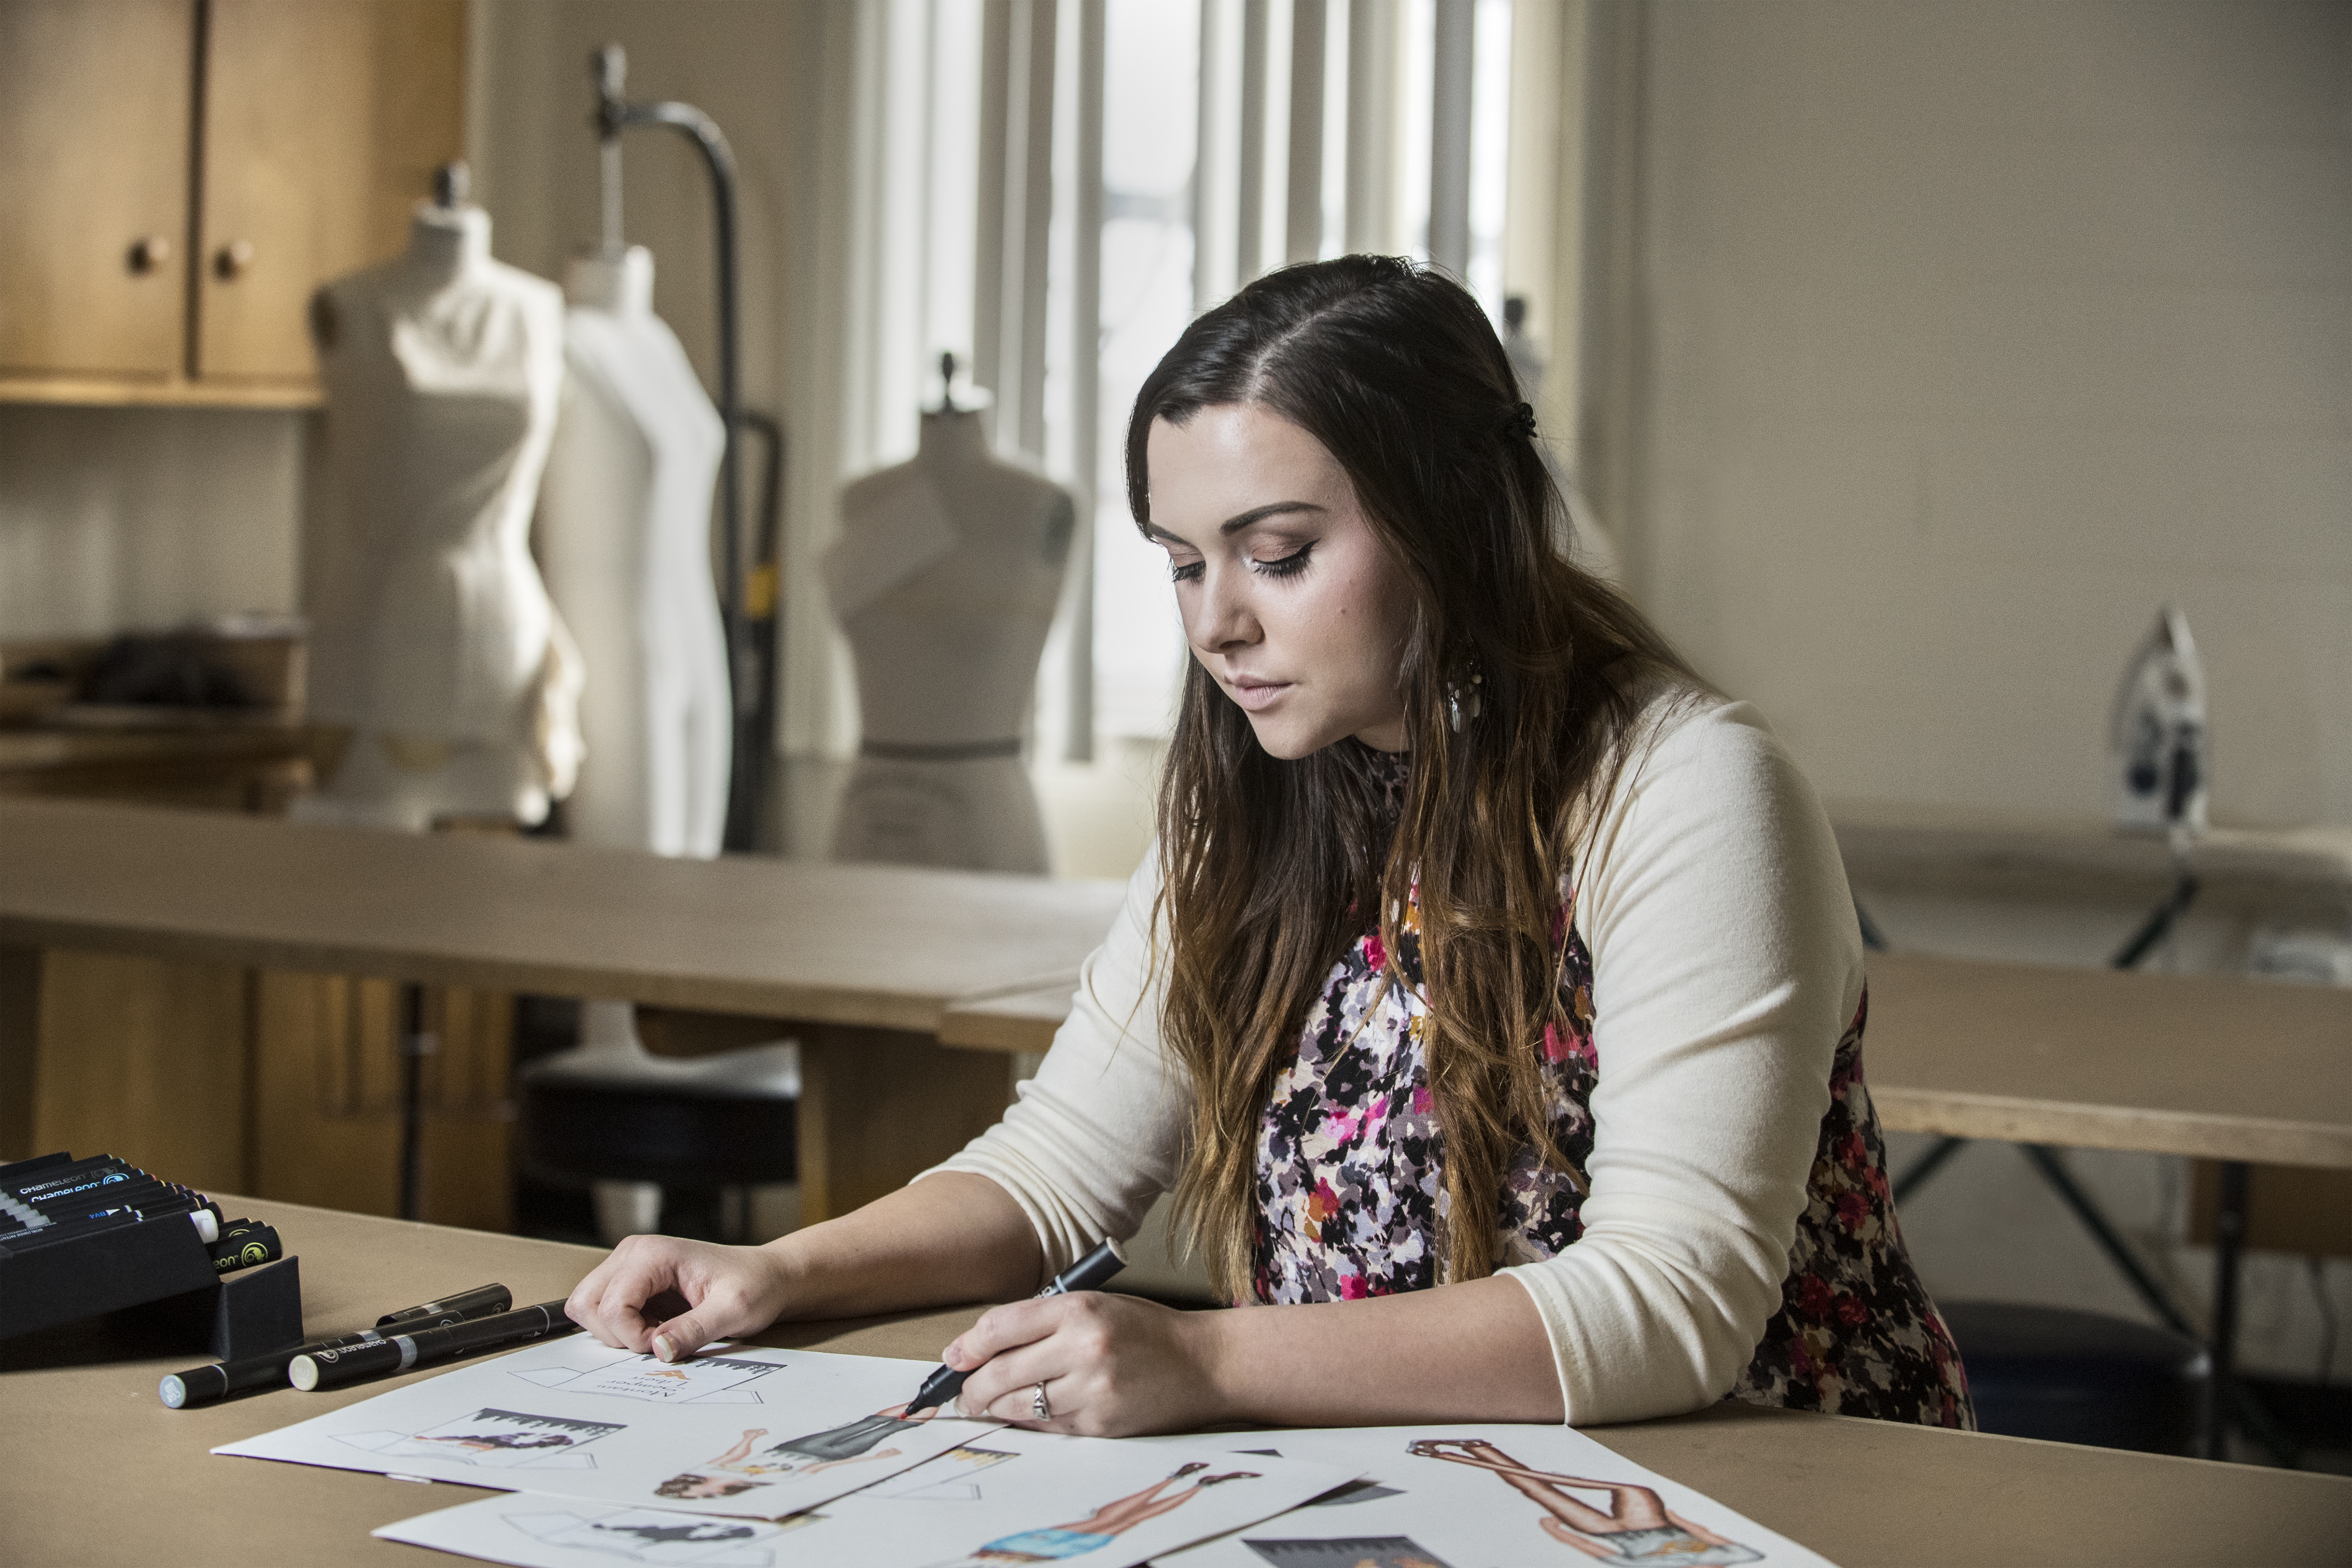 Media Advisory Wvu S First Fashion With A Purpose To Create Business Model That Addresses Appalachia S Economic Challenges Wvu Today West Virginia University